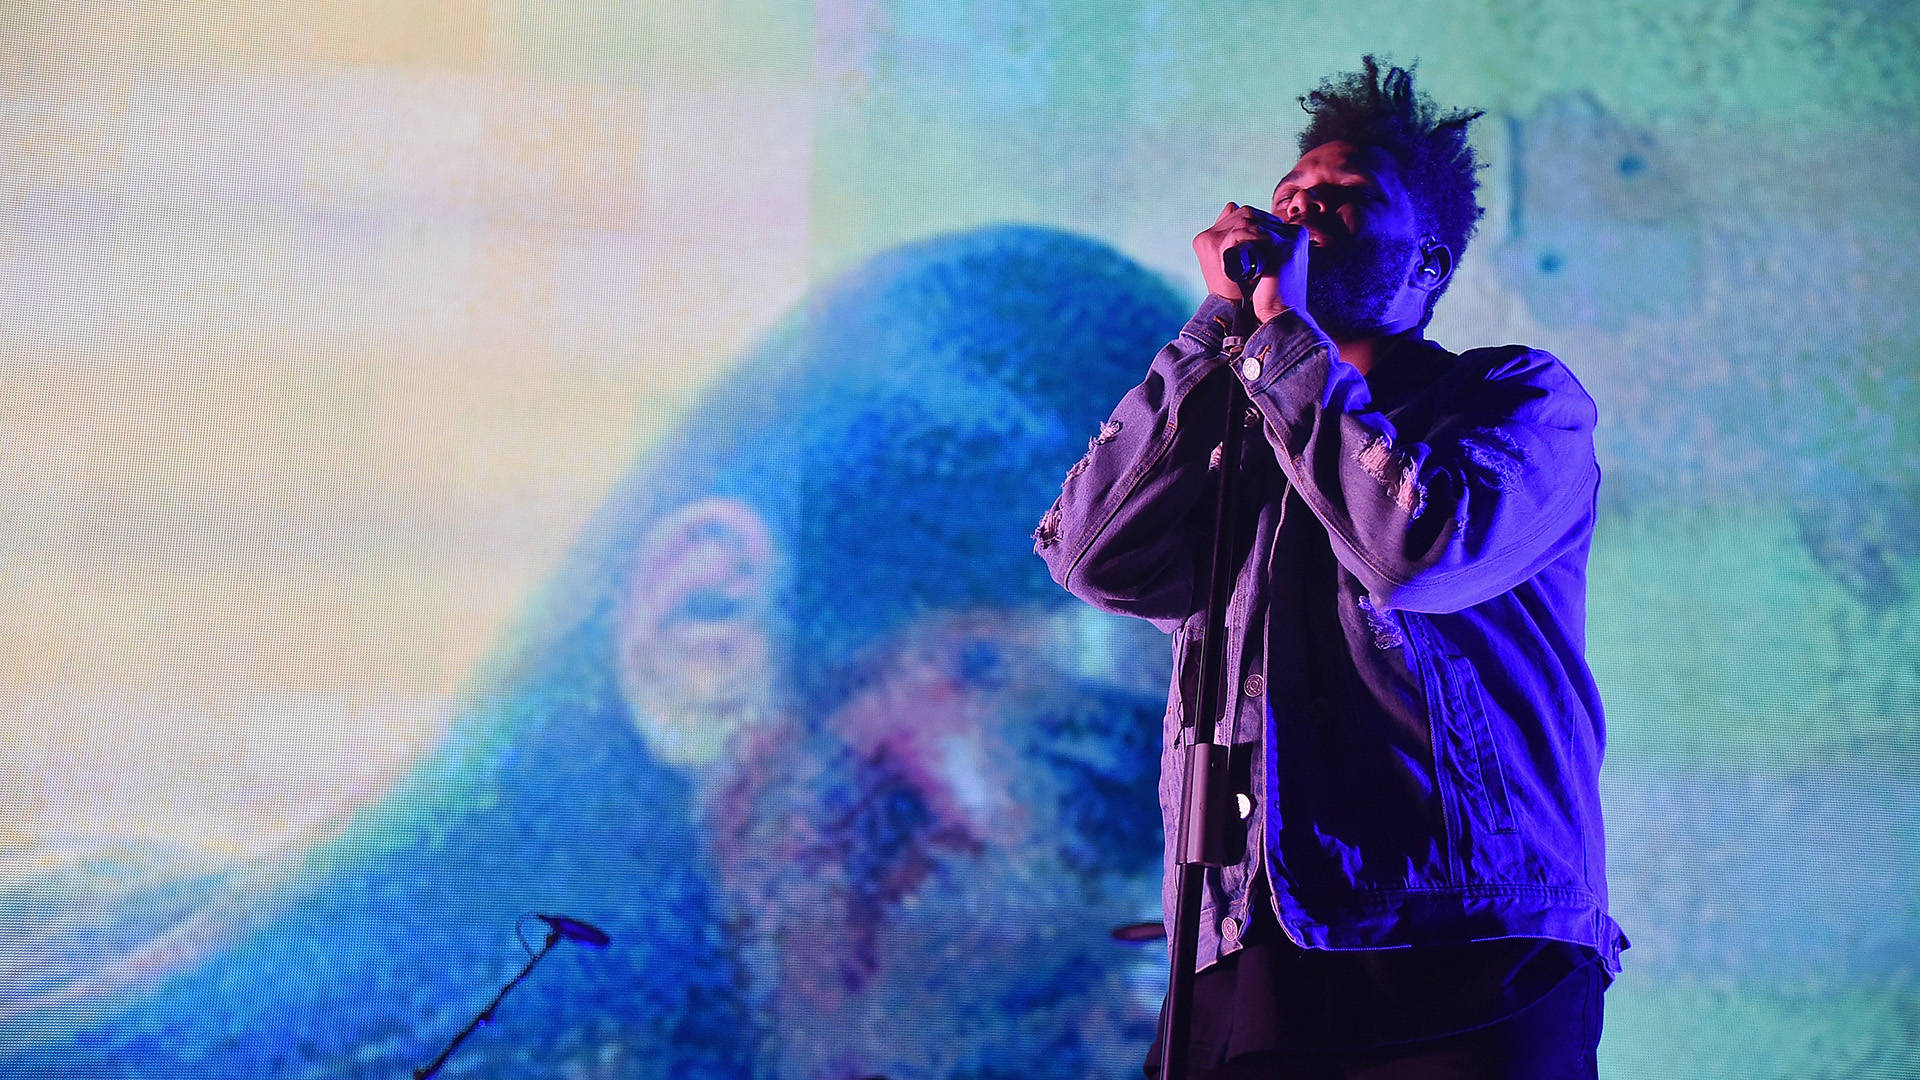 The Weeknd performs onstage during 105.1's Powerhouse 2017 at the Barclays Center on October 26, 2017 in the Brooklyn, New York City City.  Theo Wargo/Getty Images for iHeartMedia